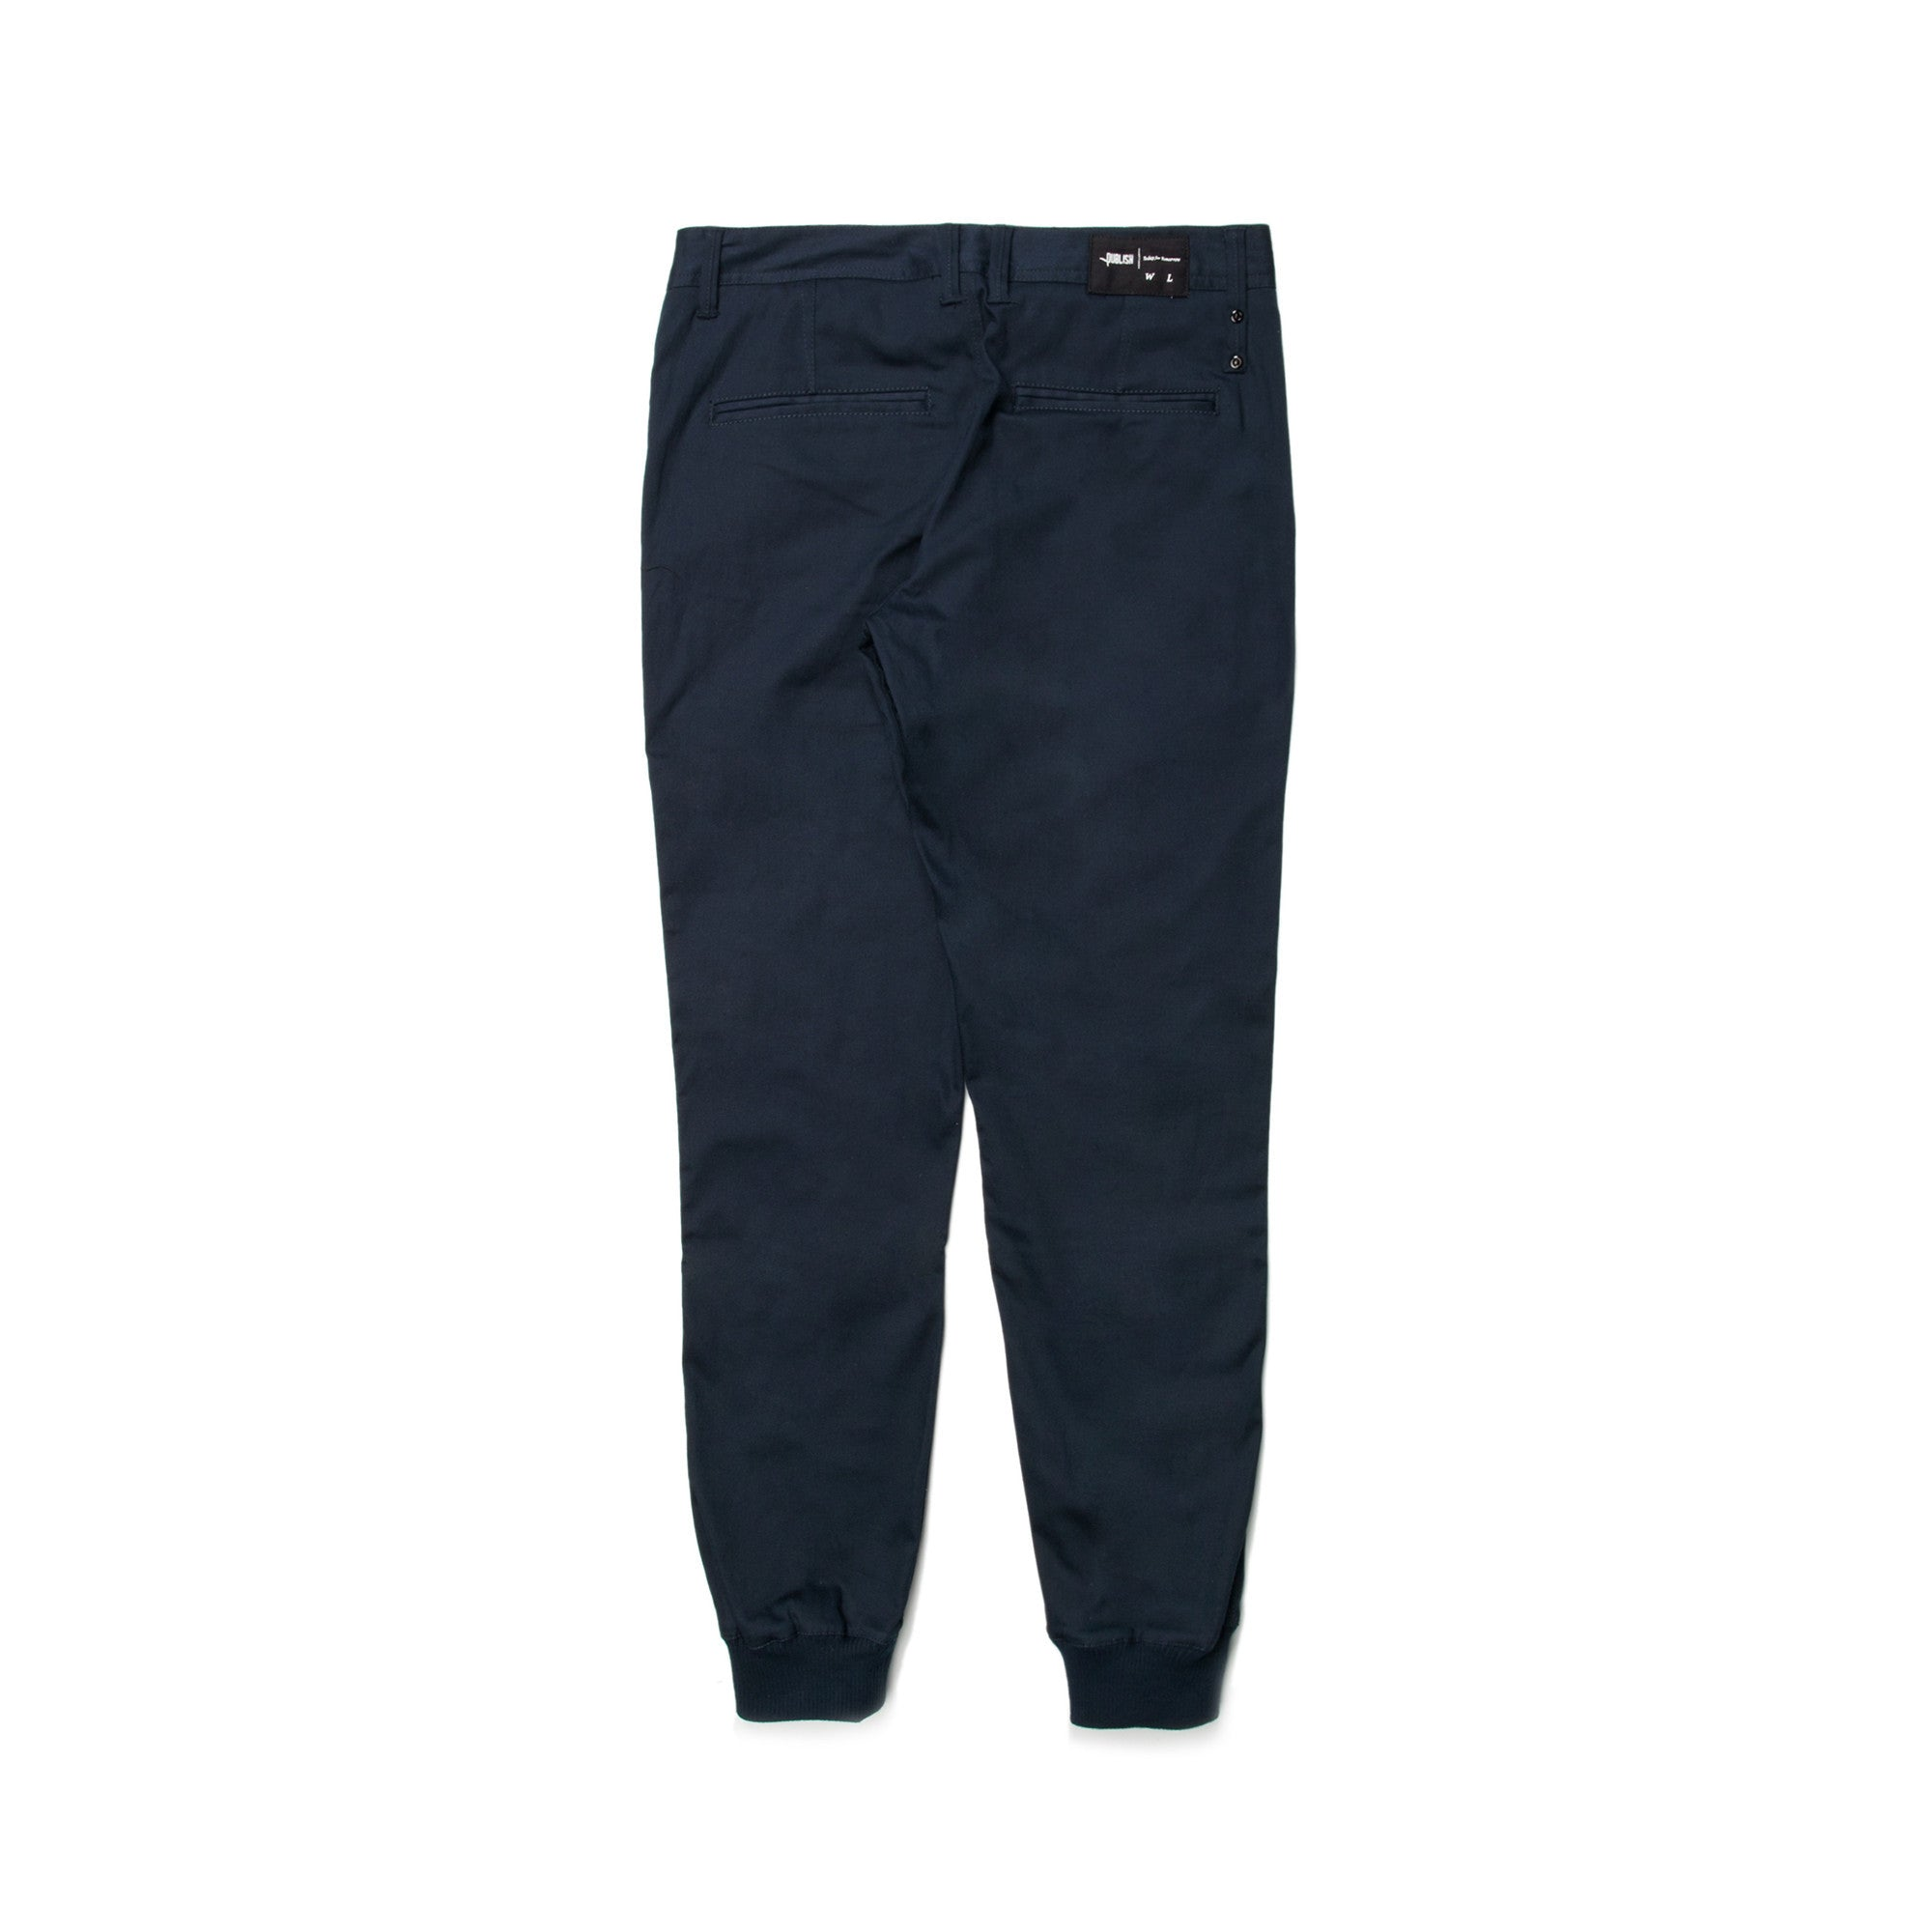 Publish Legacy Jogger Pants - Navy-Pants 褲款-Navy Selected Shop